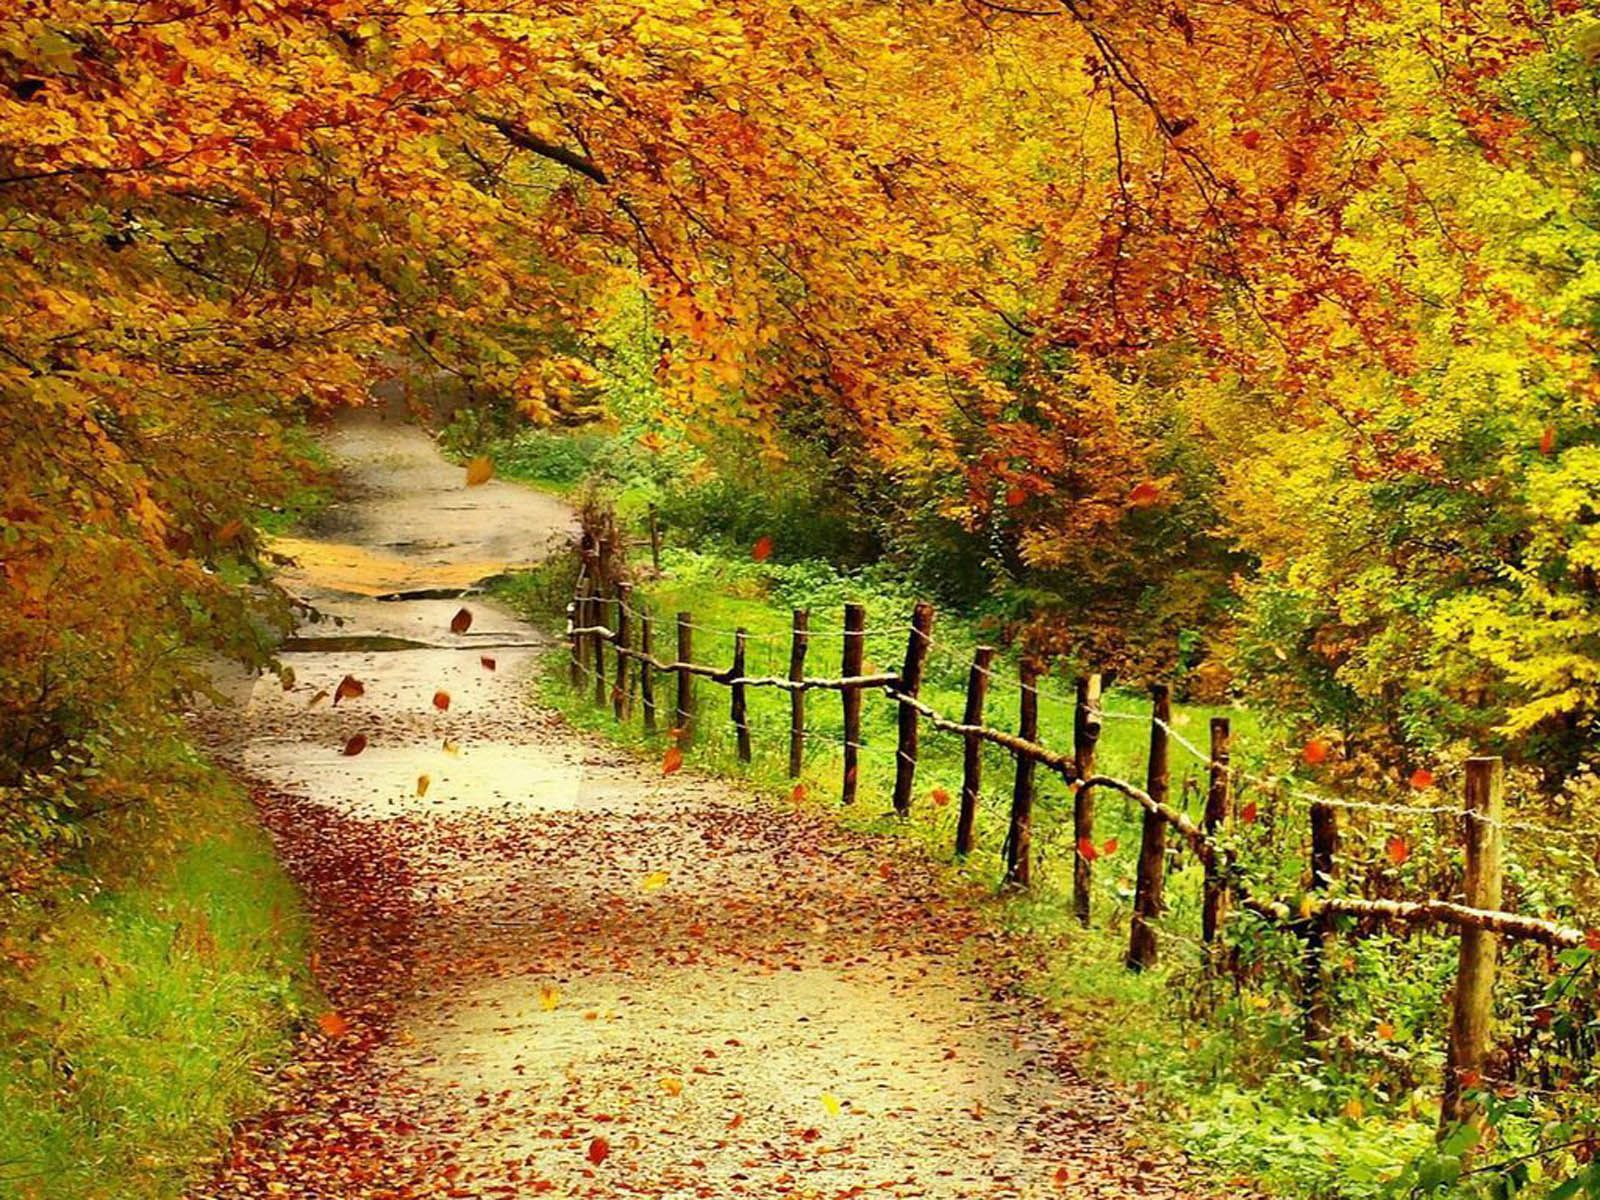 Scenery Wallpapers Autumn Scenery Scenery Pictures Scenery Wallpaper